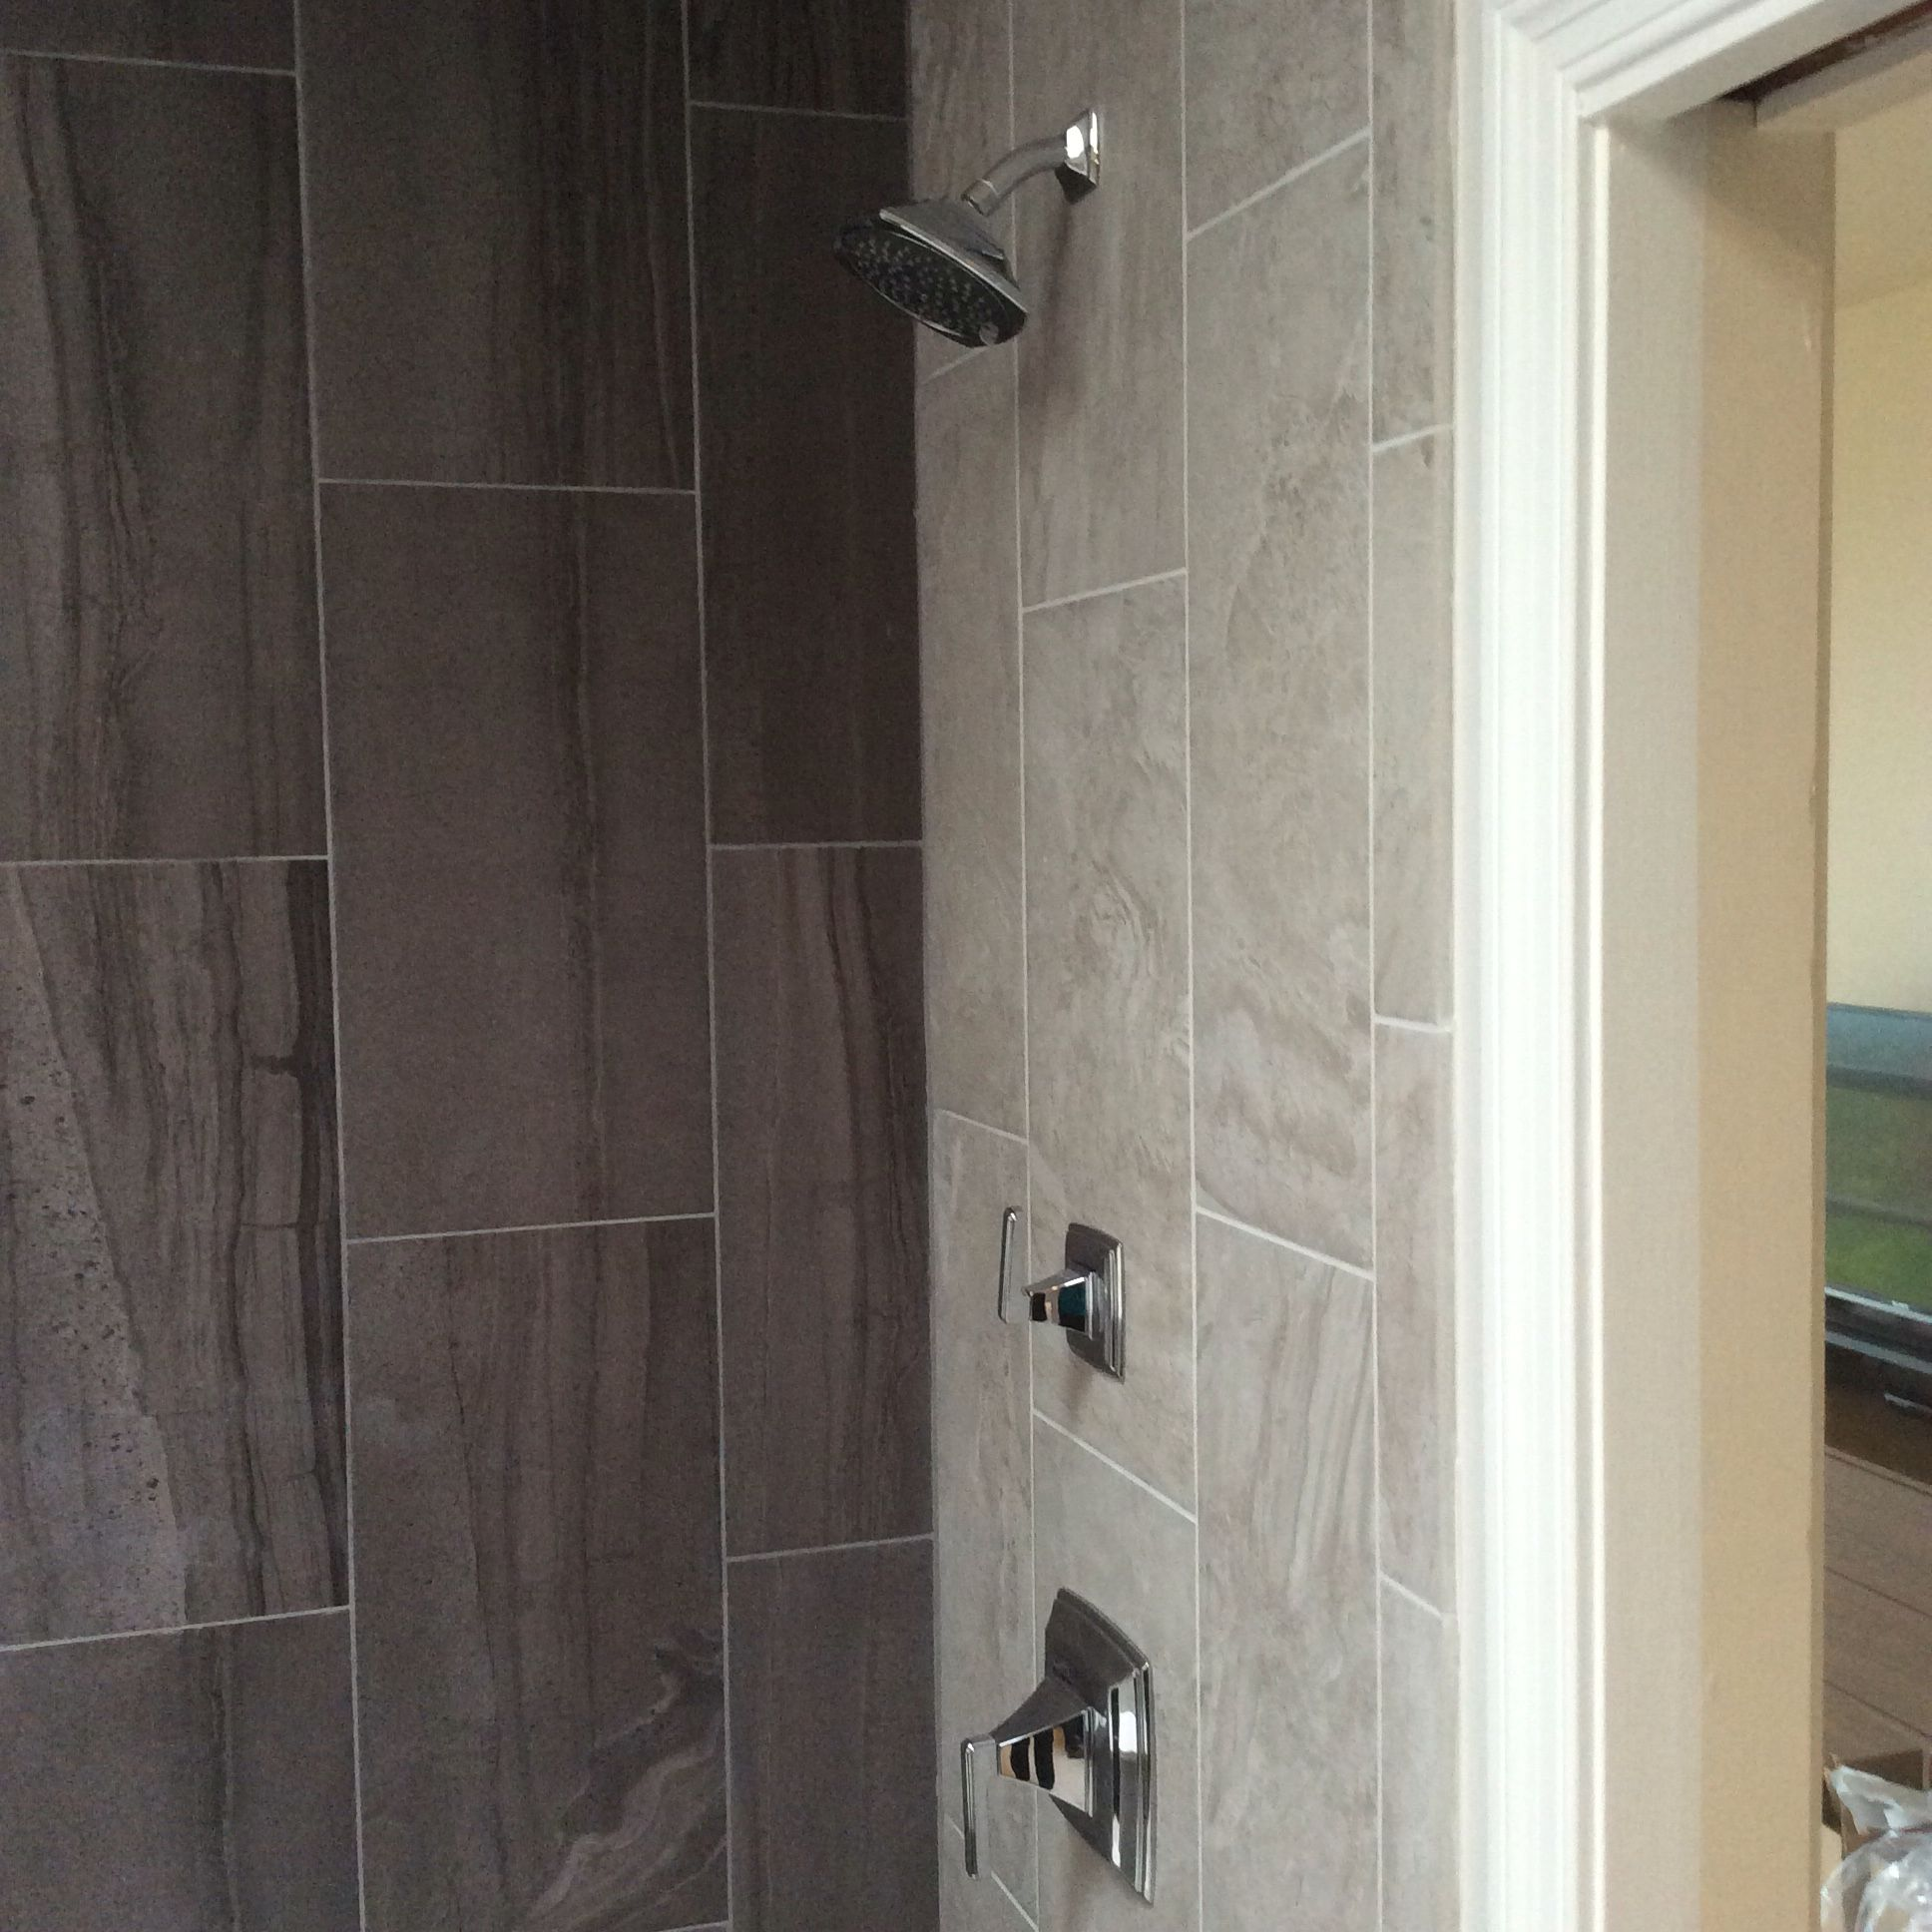 Toto shower head in chrome | Bathroom Faucets | Pinterest | Faucet ...